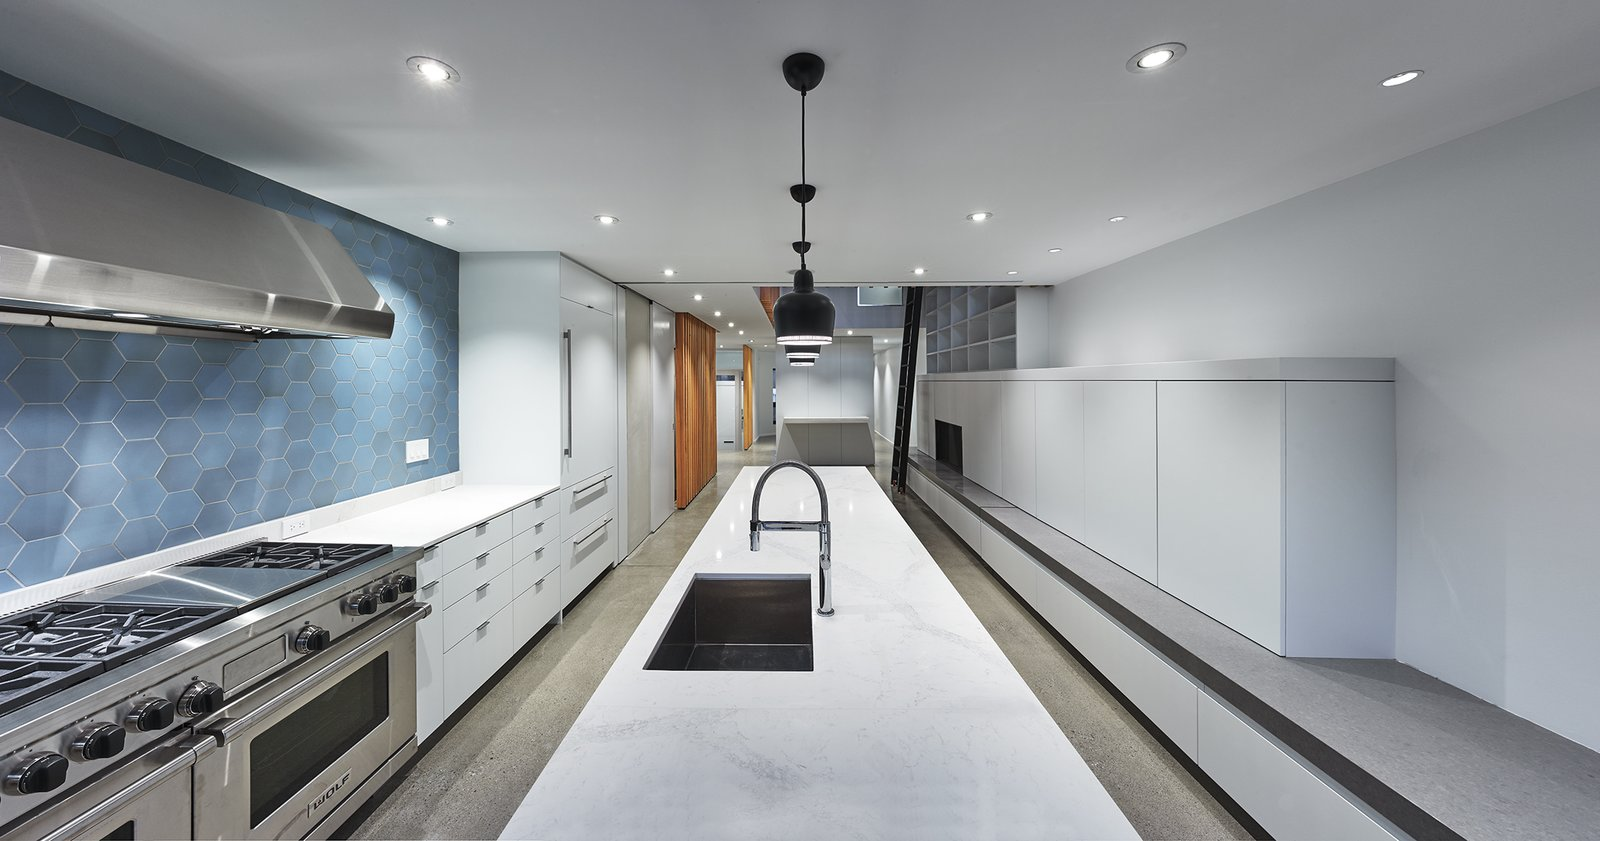 Alvar Aalto's A330 pendant fixtures above the kitchen island. Tagged: Kitchen, White Cabinet, Concrete Floor, Ceramic Tile Backsplashe, Pendant Lighting, Recessed Lighting, Range Hood, Range, Undermount Sink, and Marble Counter.  Atrium Townhome by RobitailleCurtis